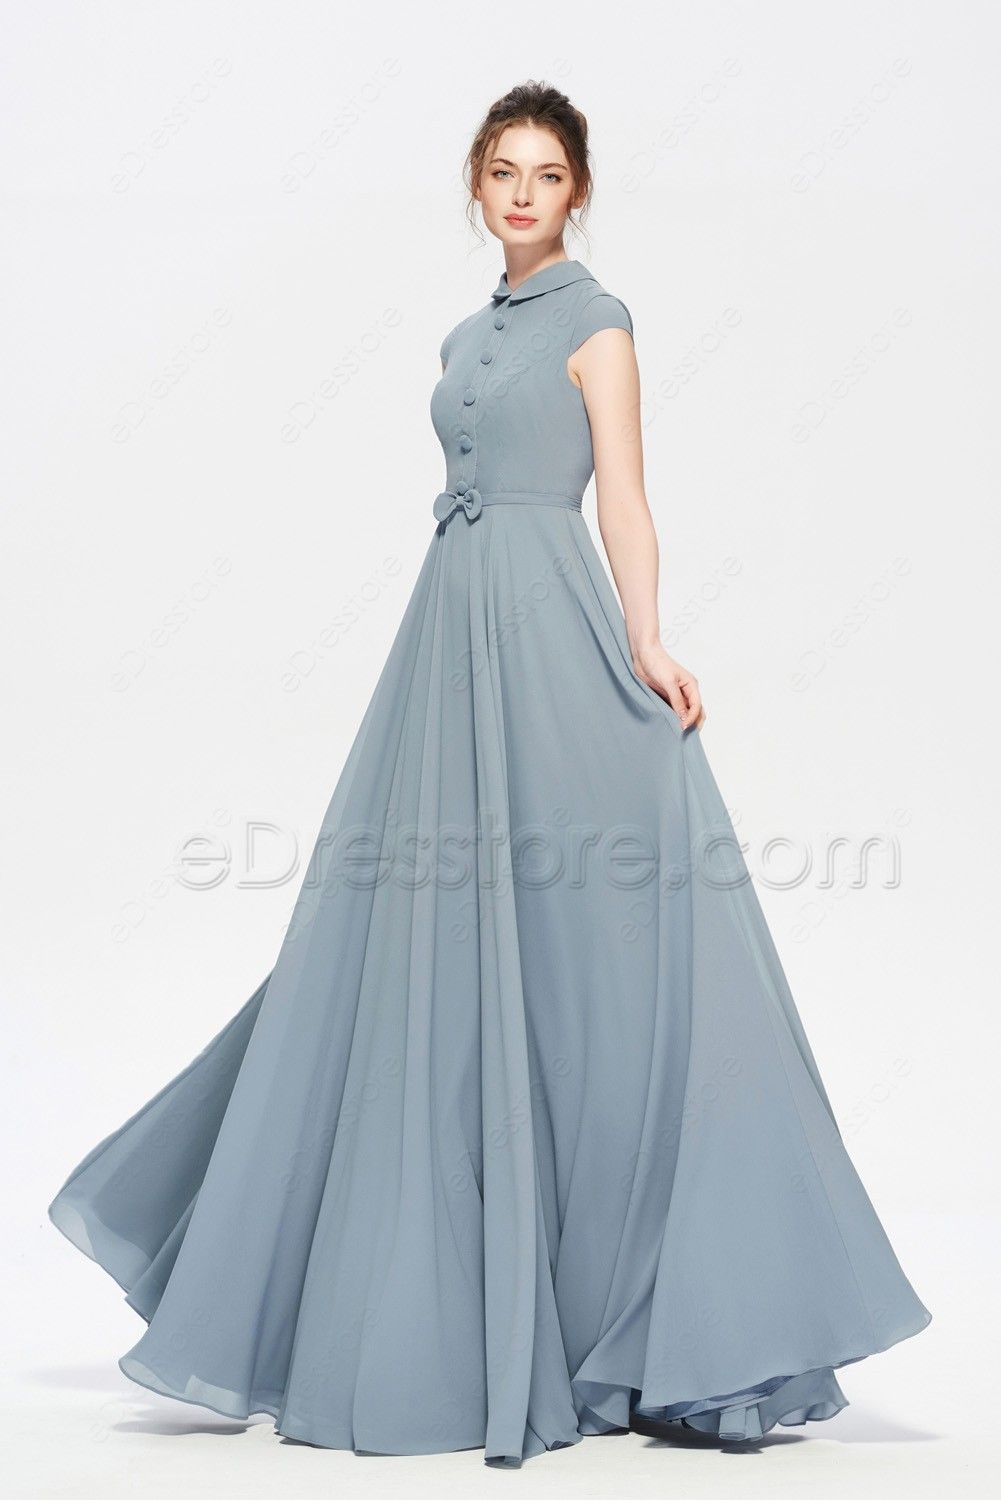 0072d0720a5 Modest Dusty Blue Bridesmaid Dress Cap Sleeves in 2019